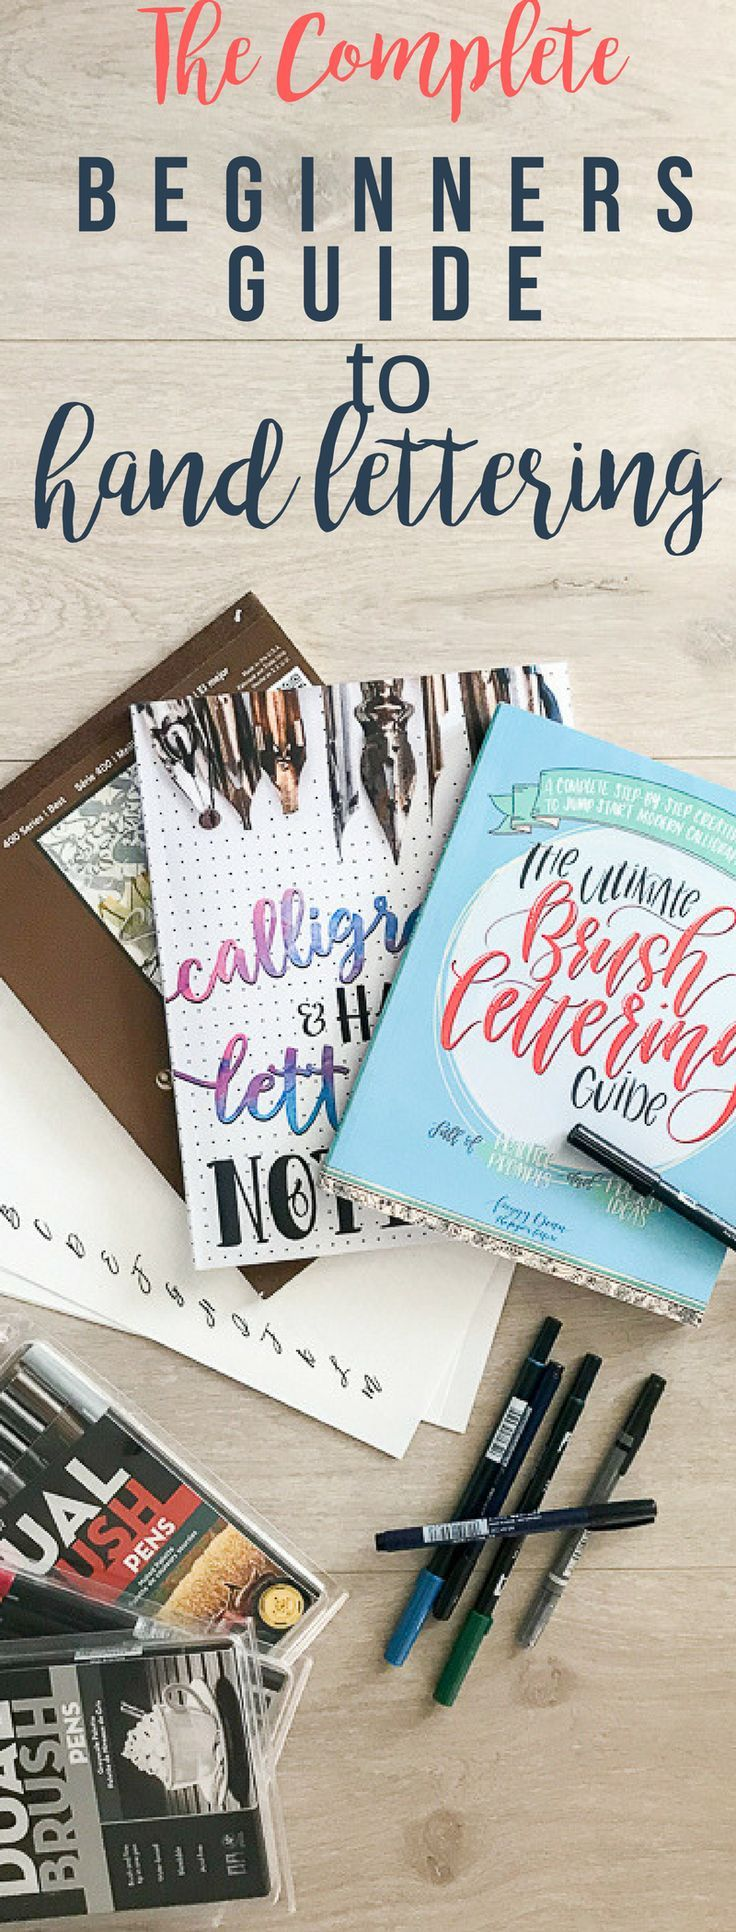 Discover this complete beginners guide to handlettering. Start this new hobby today with minimal investment. #handlettering #script #scriptwriting